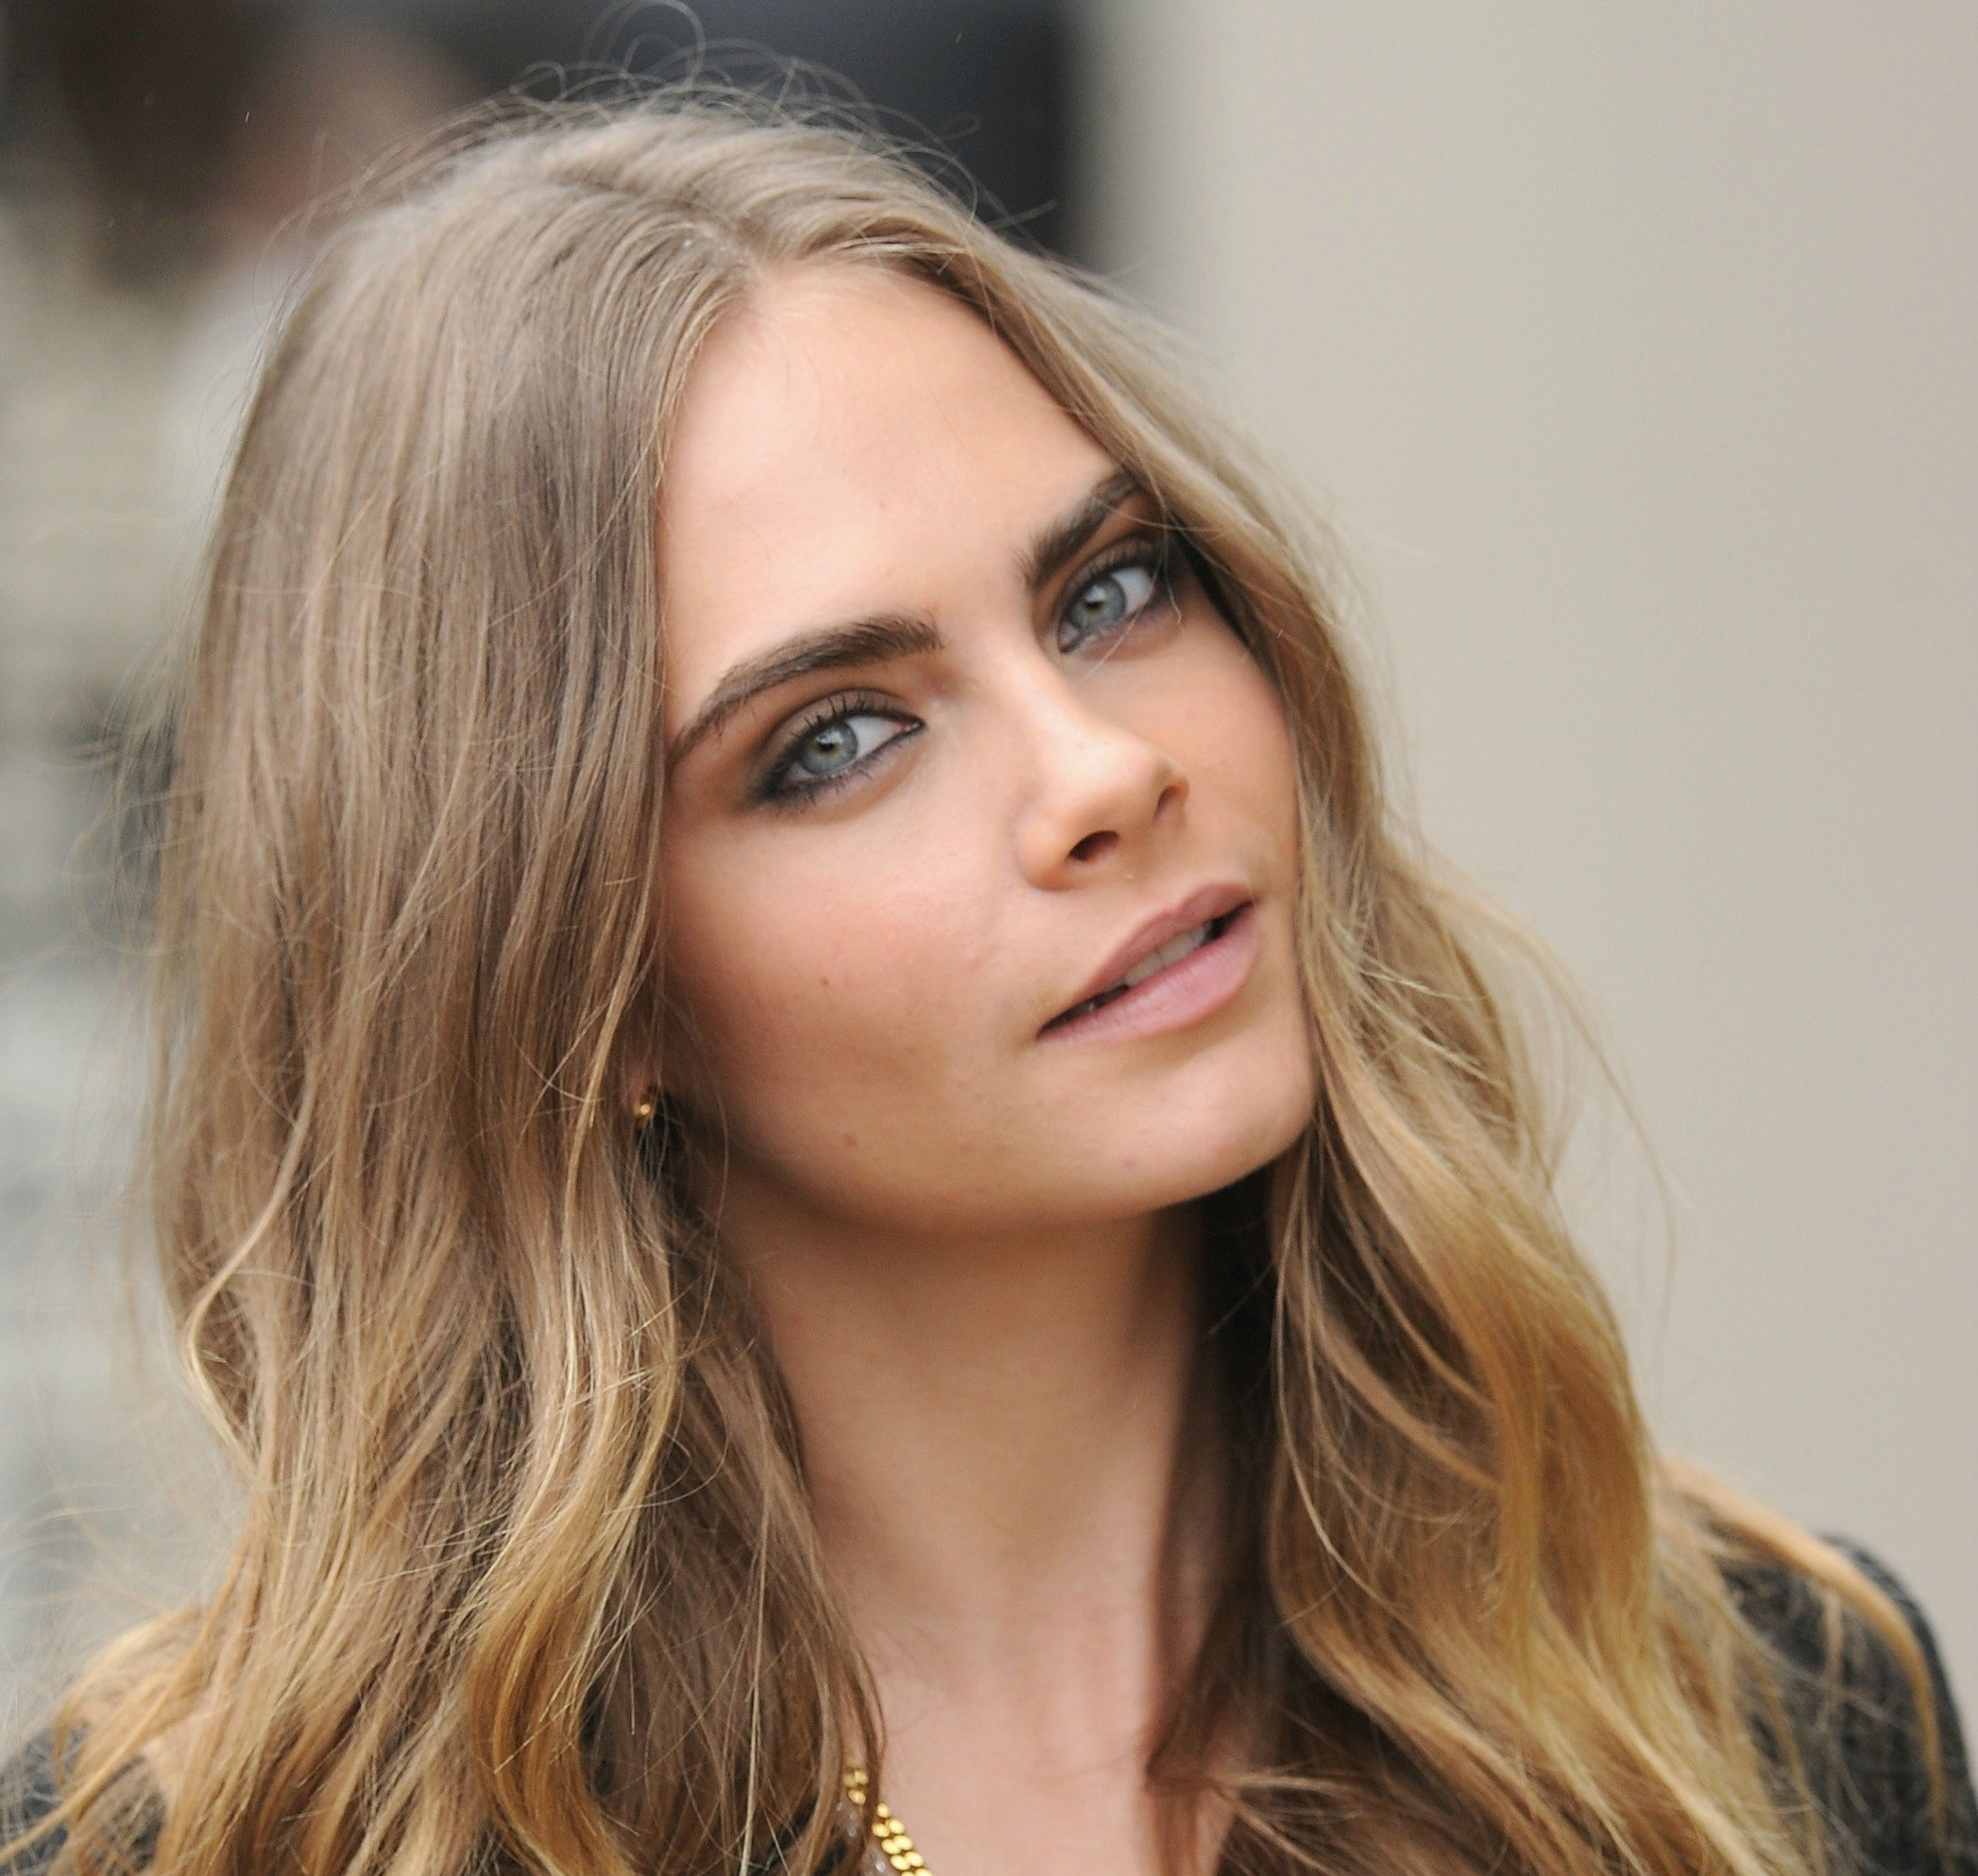 The Best Makeup Colors For Blue Eyes   Glamour intended for Makeup Colors Blue Eyes Brown Hair